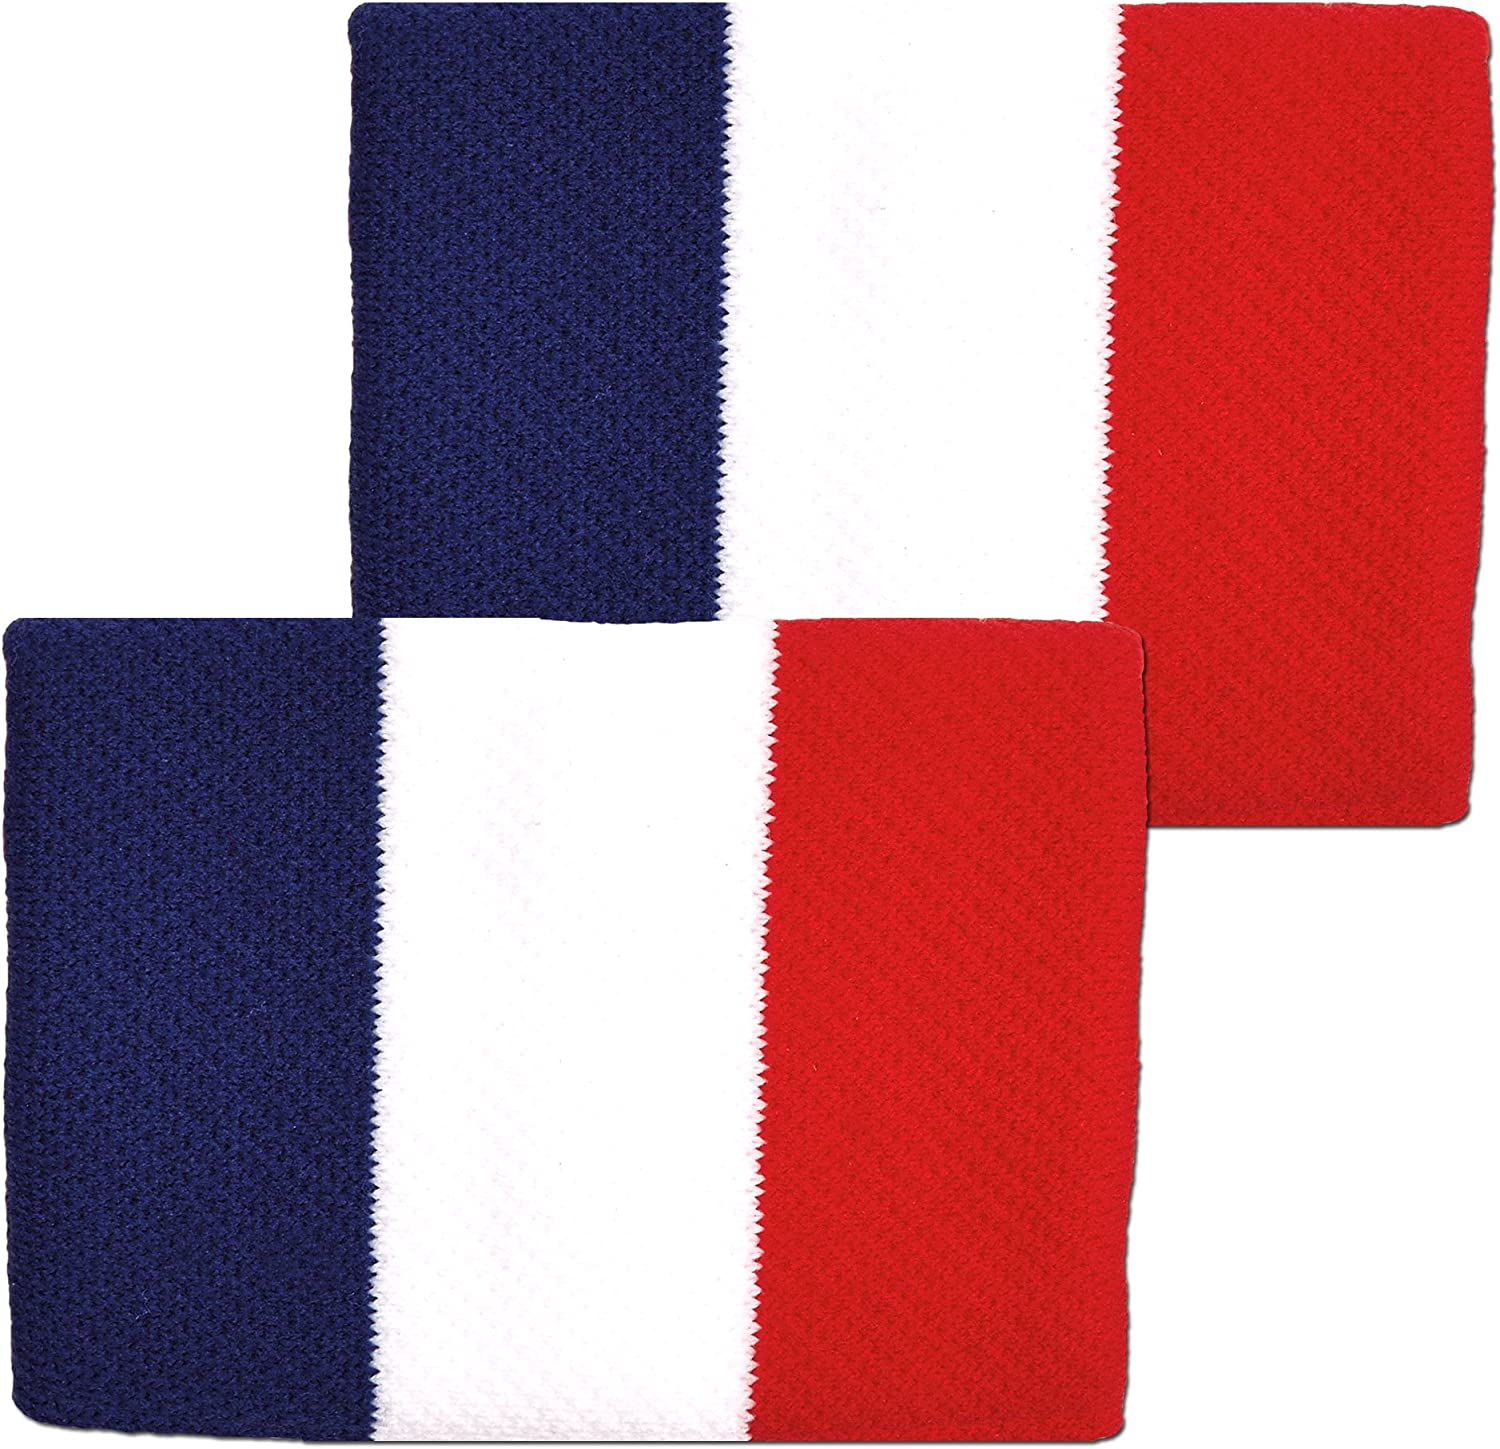 Unique Sports France Flag 4-inch Wristbands